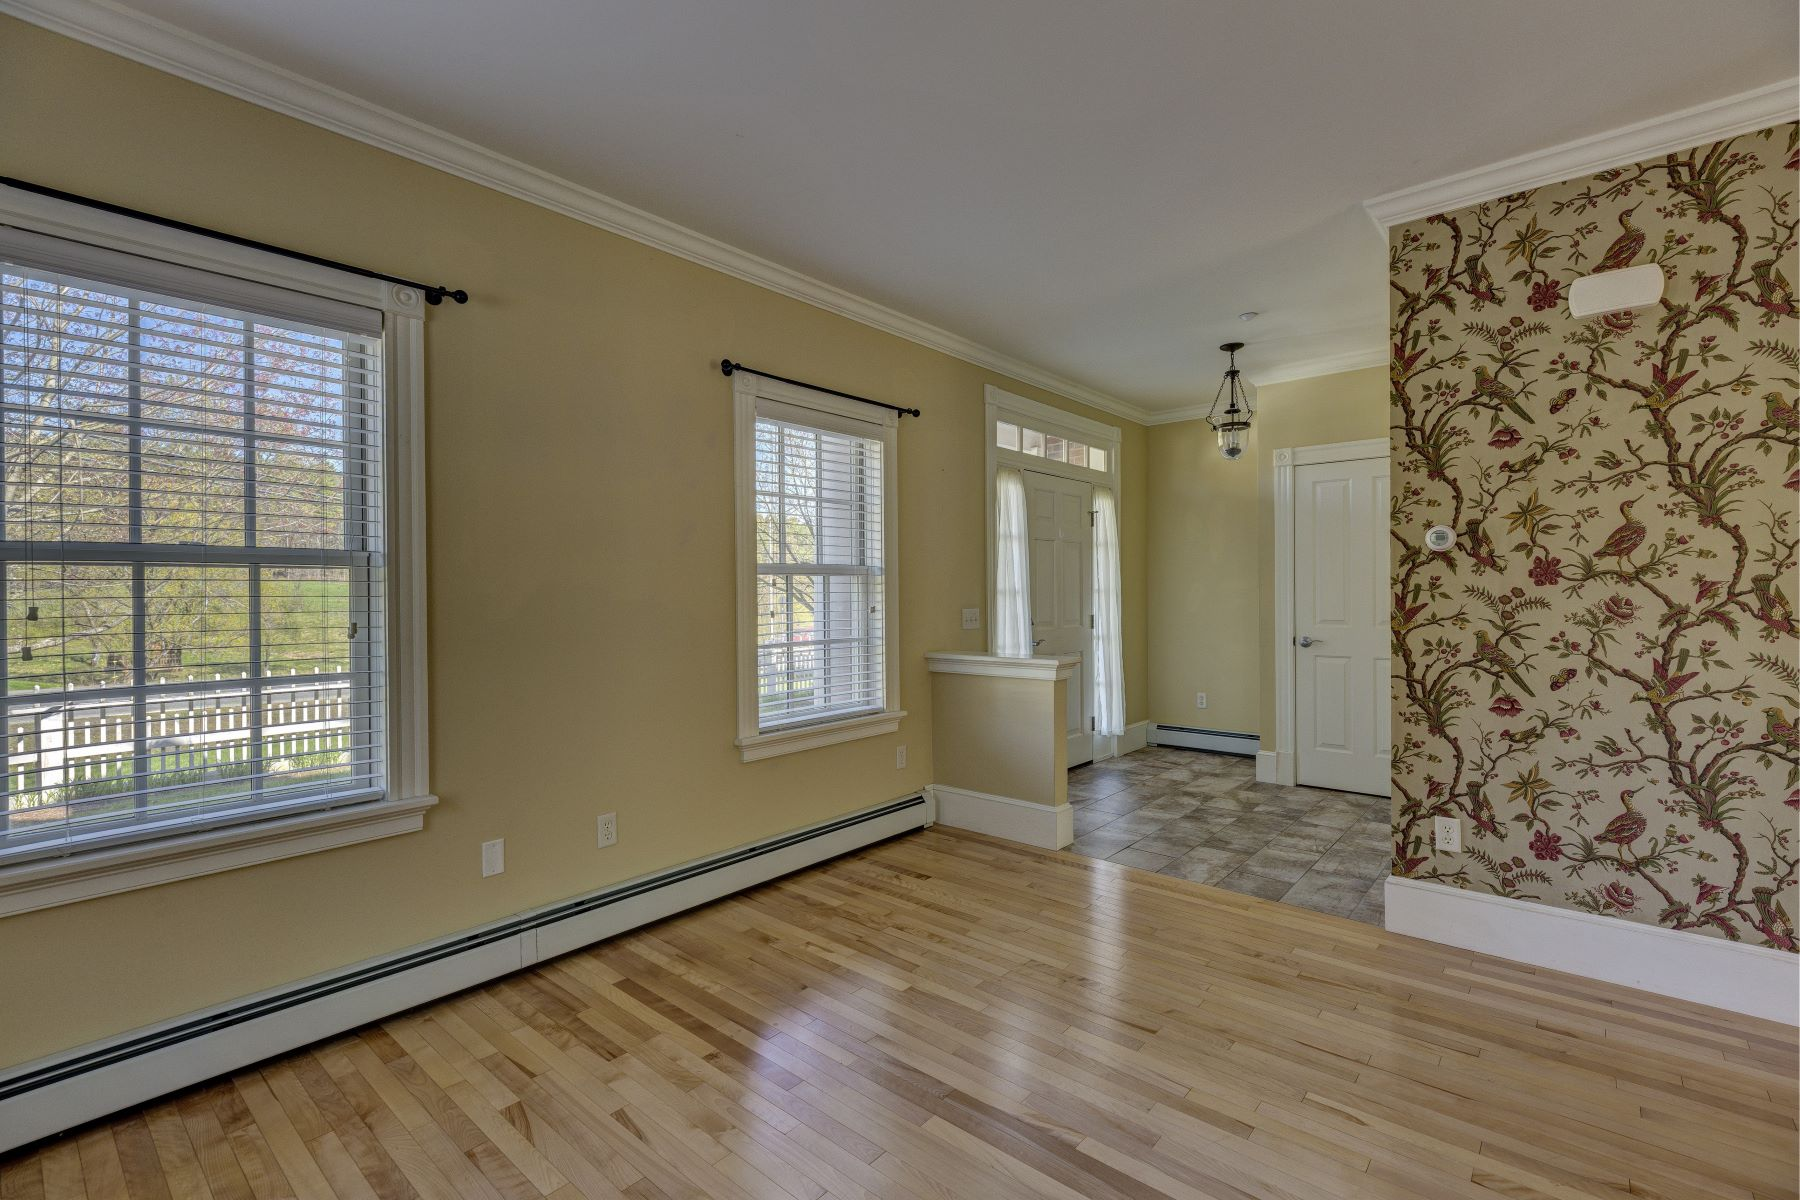 Single Family Homes for Sale at Two Bedroom Condo in Norwich 235 Main St 5 Norwich, Vermont 05055 United States